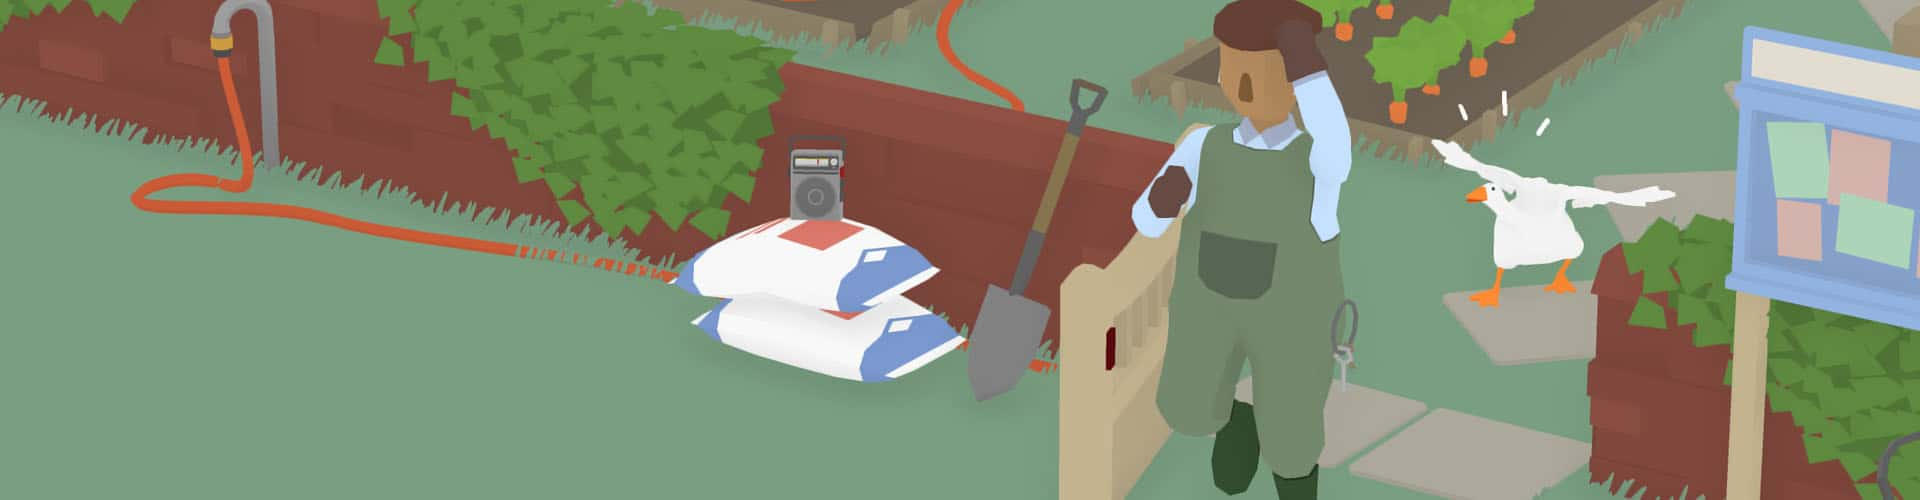 Untitled Goose Game Release Date, News, Trailer and Rumors